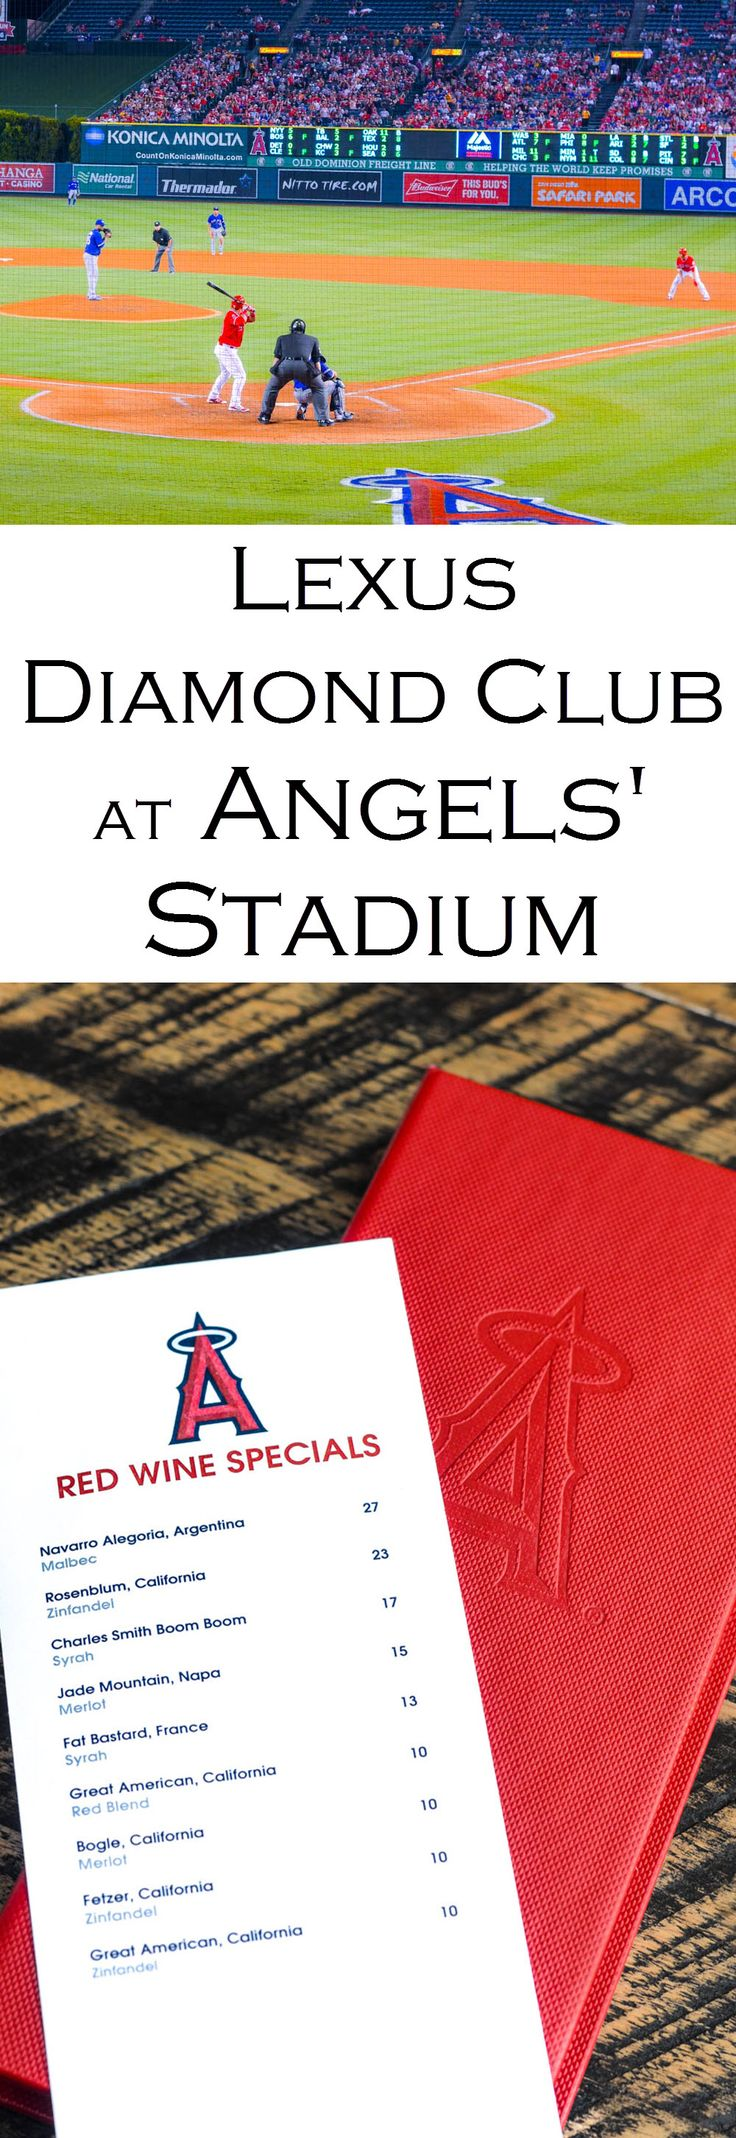 Get an inside peak at the Lexus Diamond Club at Angels' Stadium. Sit behind home plate and enjoy delicious food and wine. Whether yoing Disneyland and looking for what else to do nearby, check these photos out...